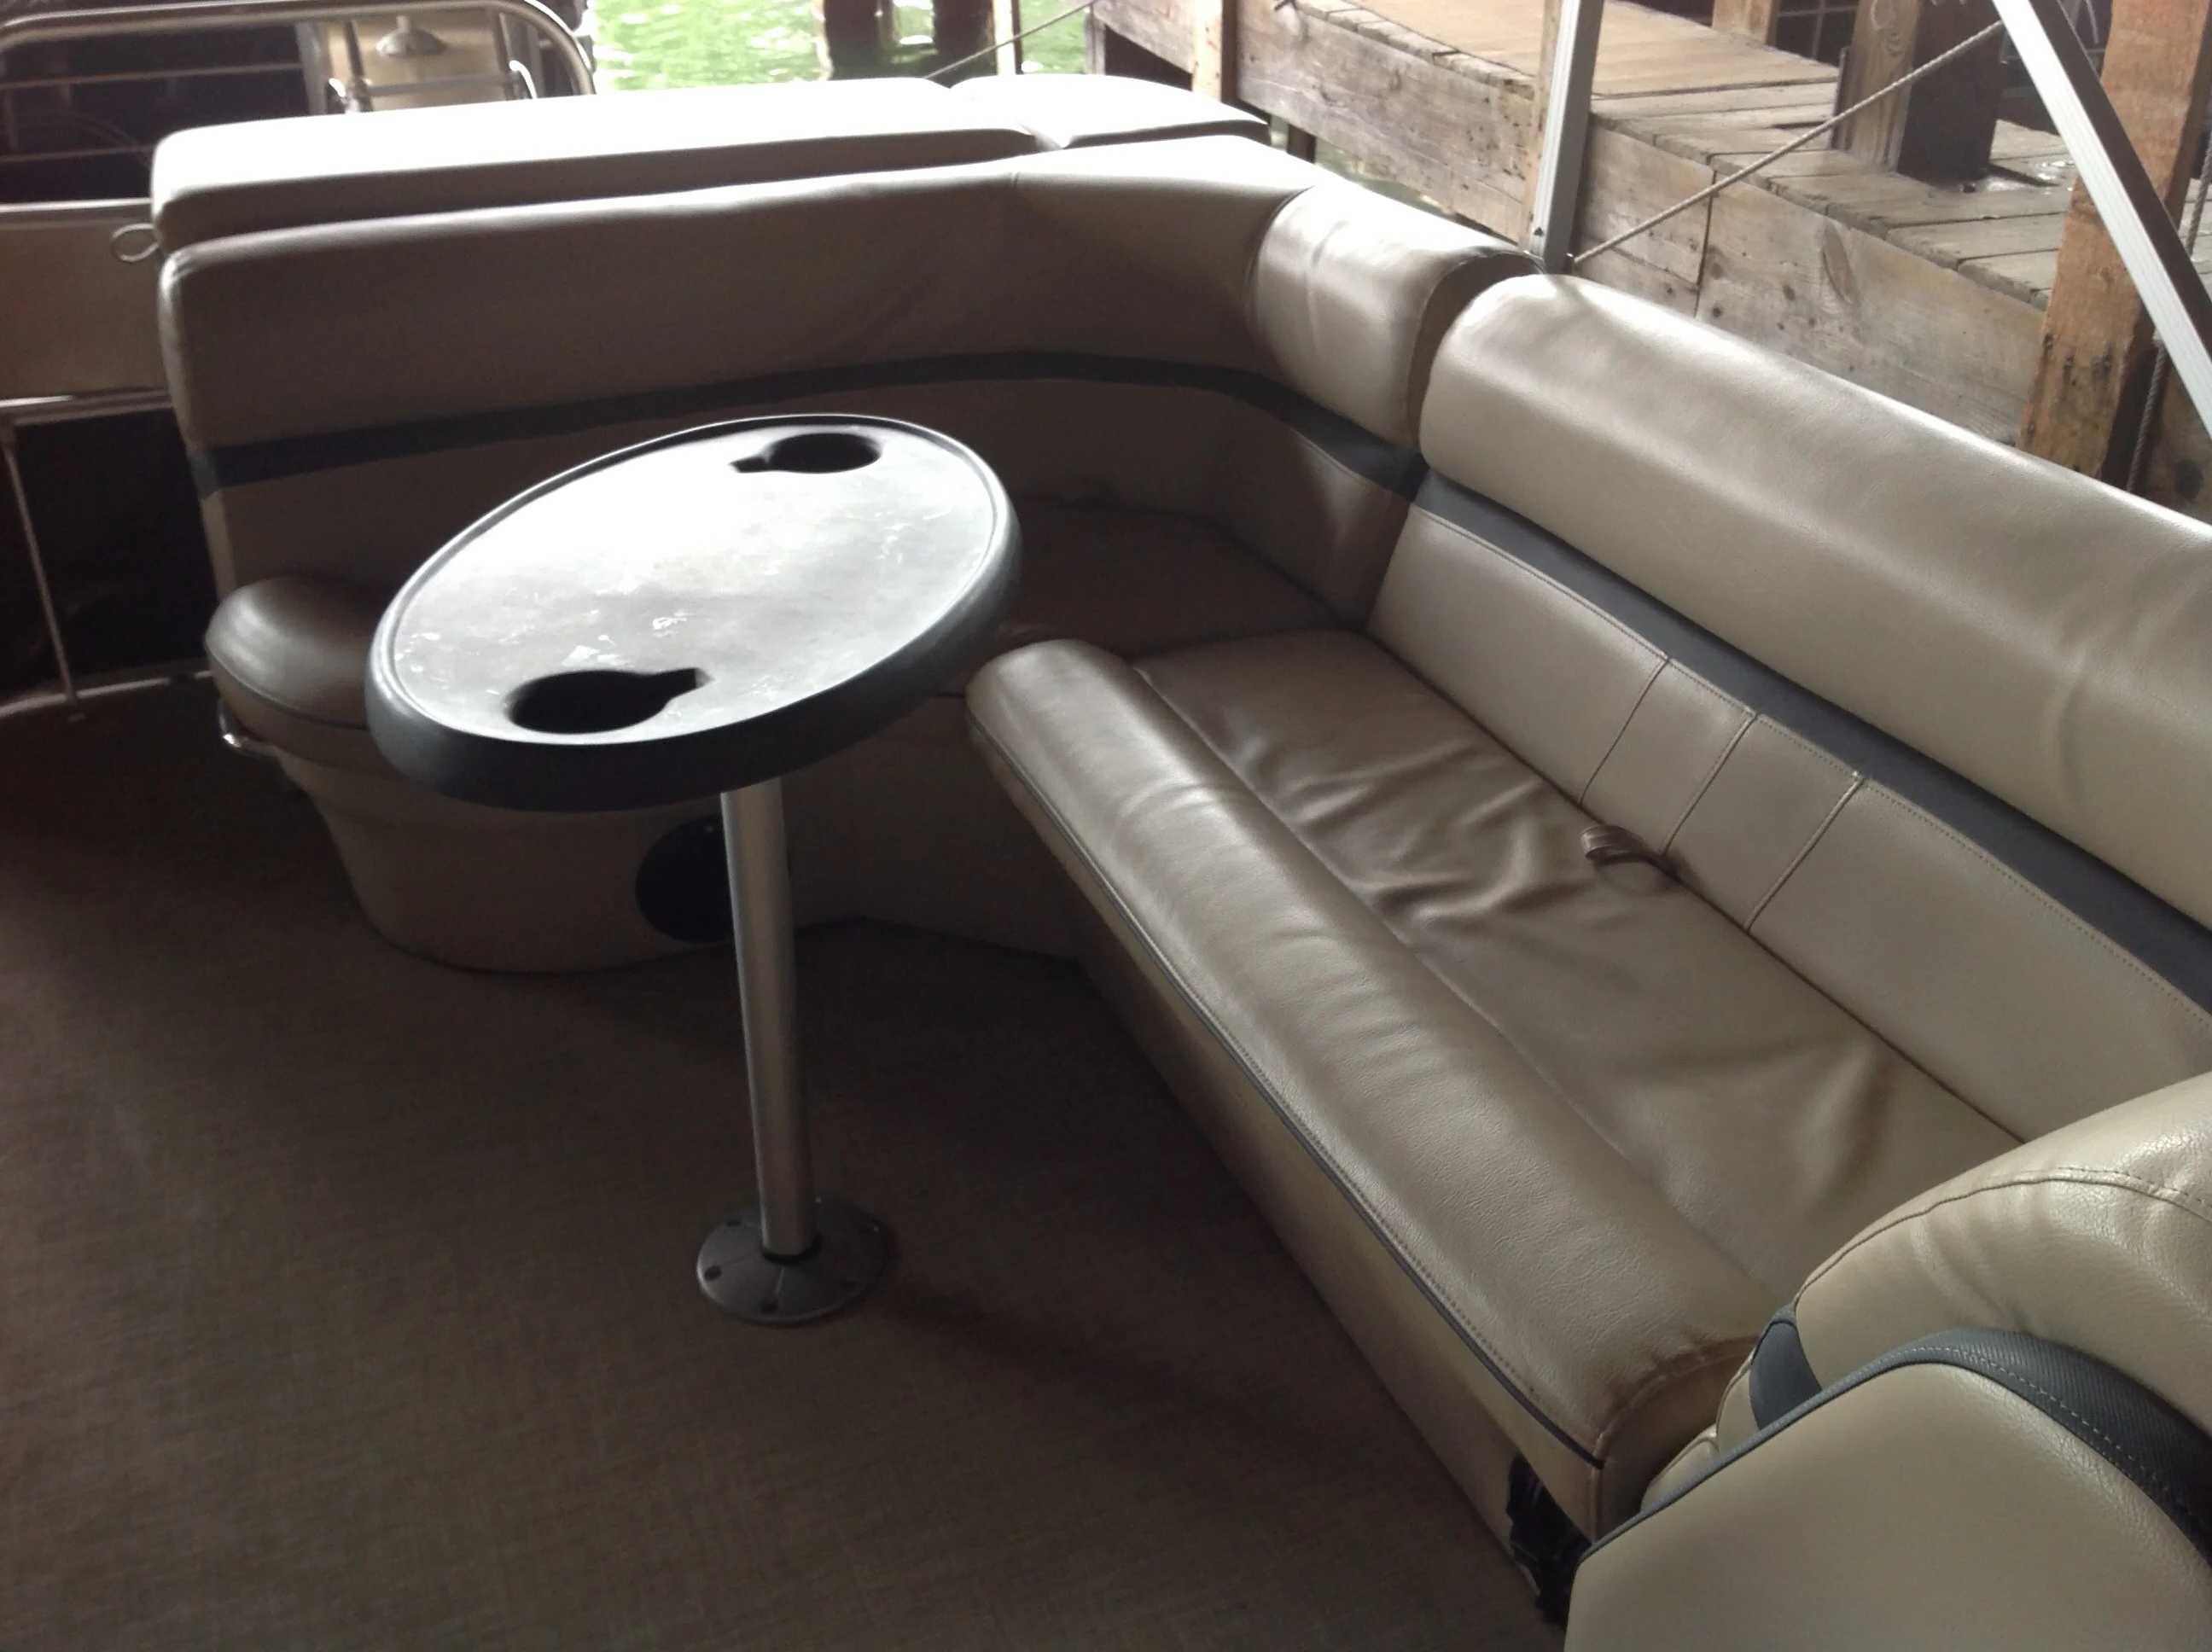 2017 Berkshire Pontoons boat for sale, model of the boat is 24cl Cts 2.75 & Image # 6 of 9